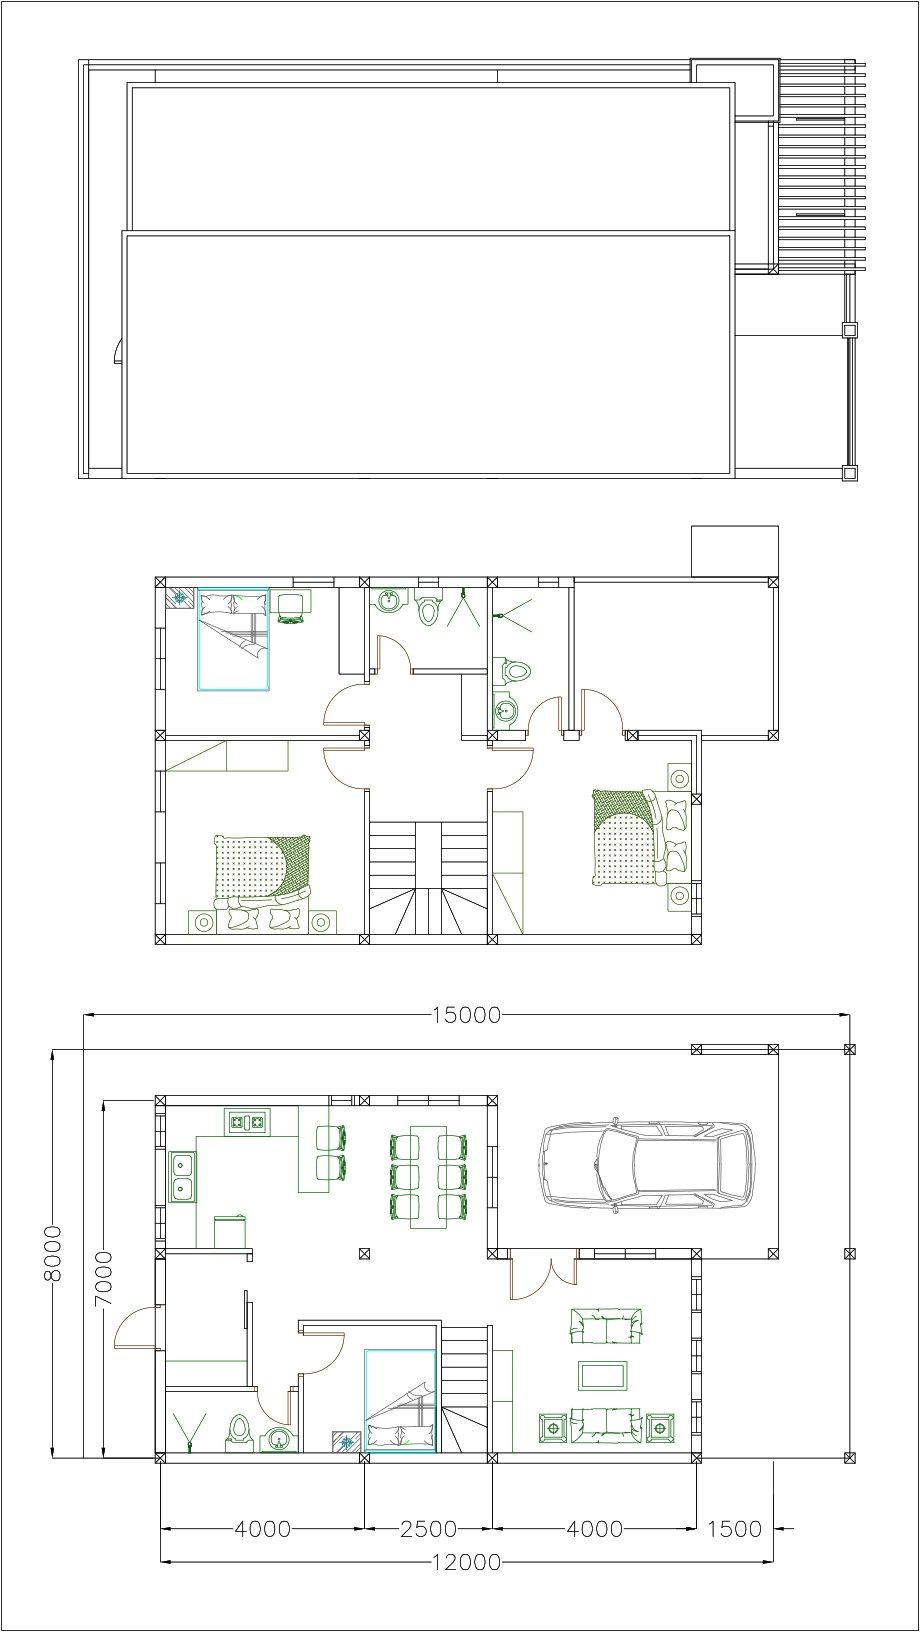 Home Design Plan 7x12m with 4 Bedrooms Plot 8x15 | plan 22 | House on house floor plans 12x28, house floor plans 26x26, house floor plans 28x28, house floor plans 16x28, house floor plans 30x40, house floor plans 40x50, house floor plans 50x60, house floor plans 36x48, house floor plans 12x20, house floor plans 16x16, house floor plans 12x32, house floor plans 12x24, house floor plans 14x30,